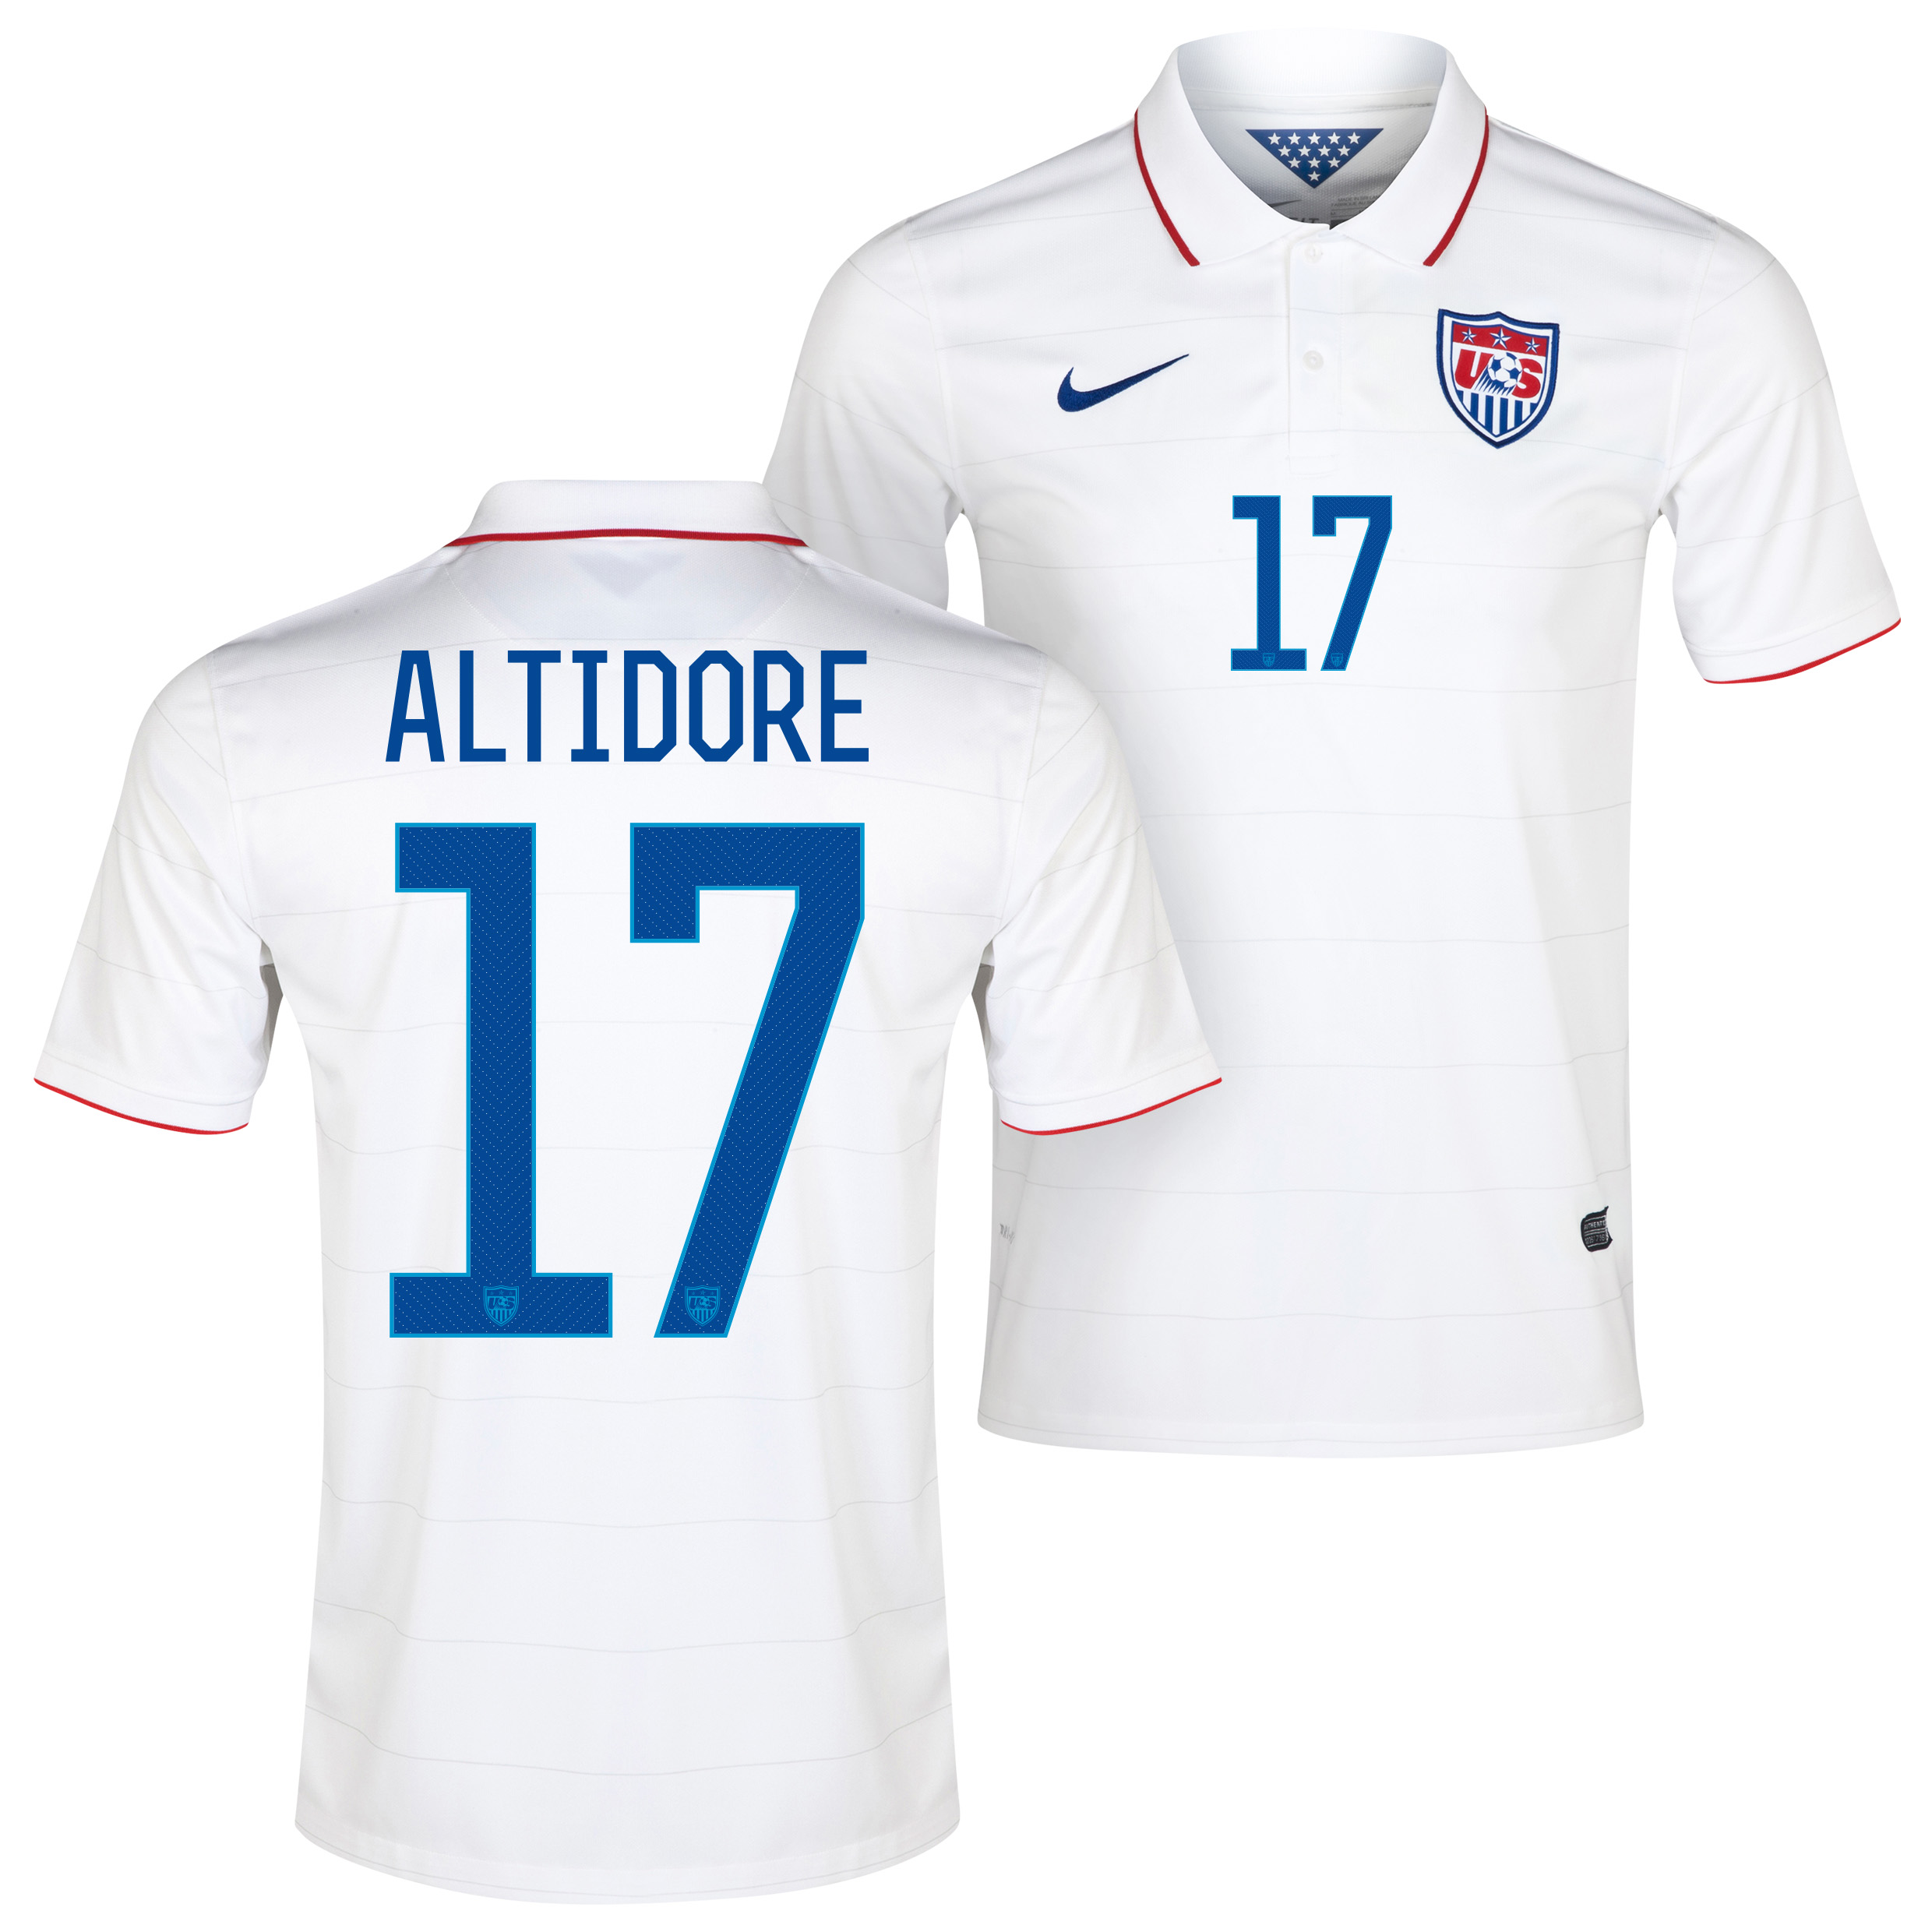 USA Home Shirt 2013/15 White with Altidore 17 printing